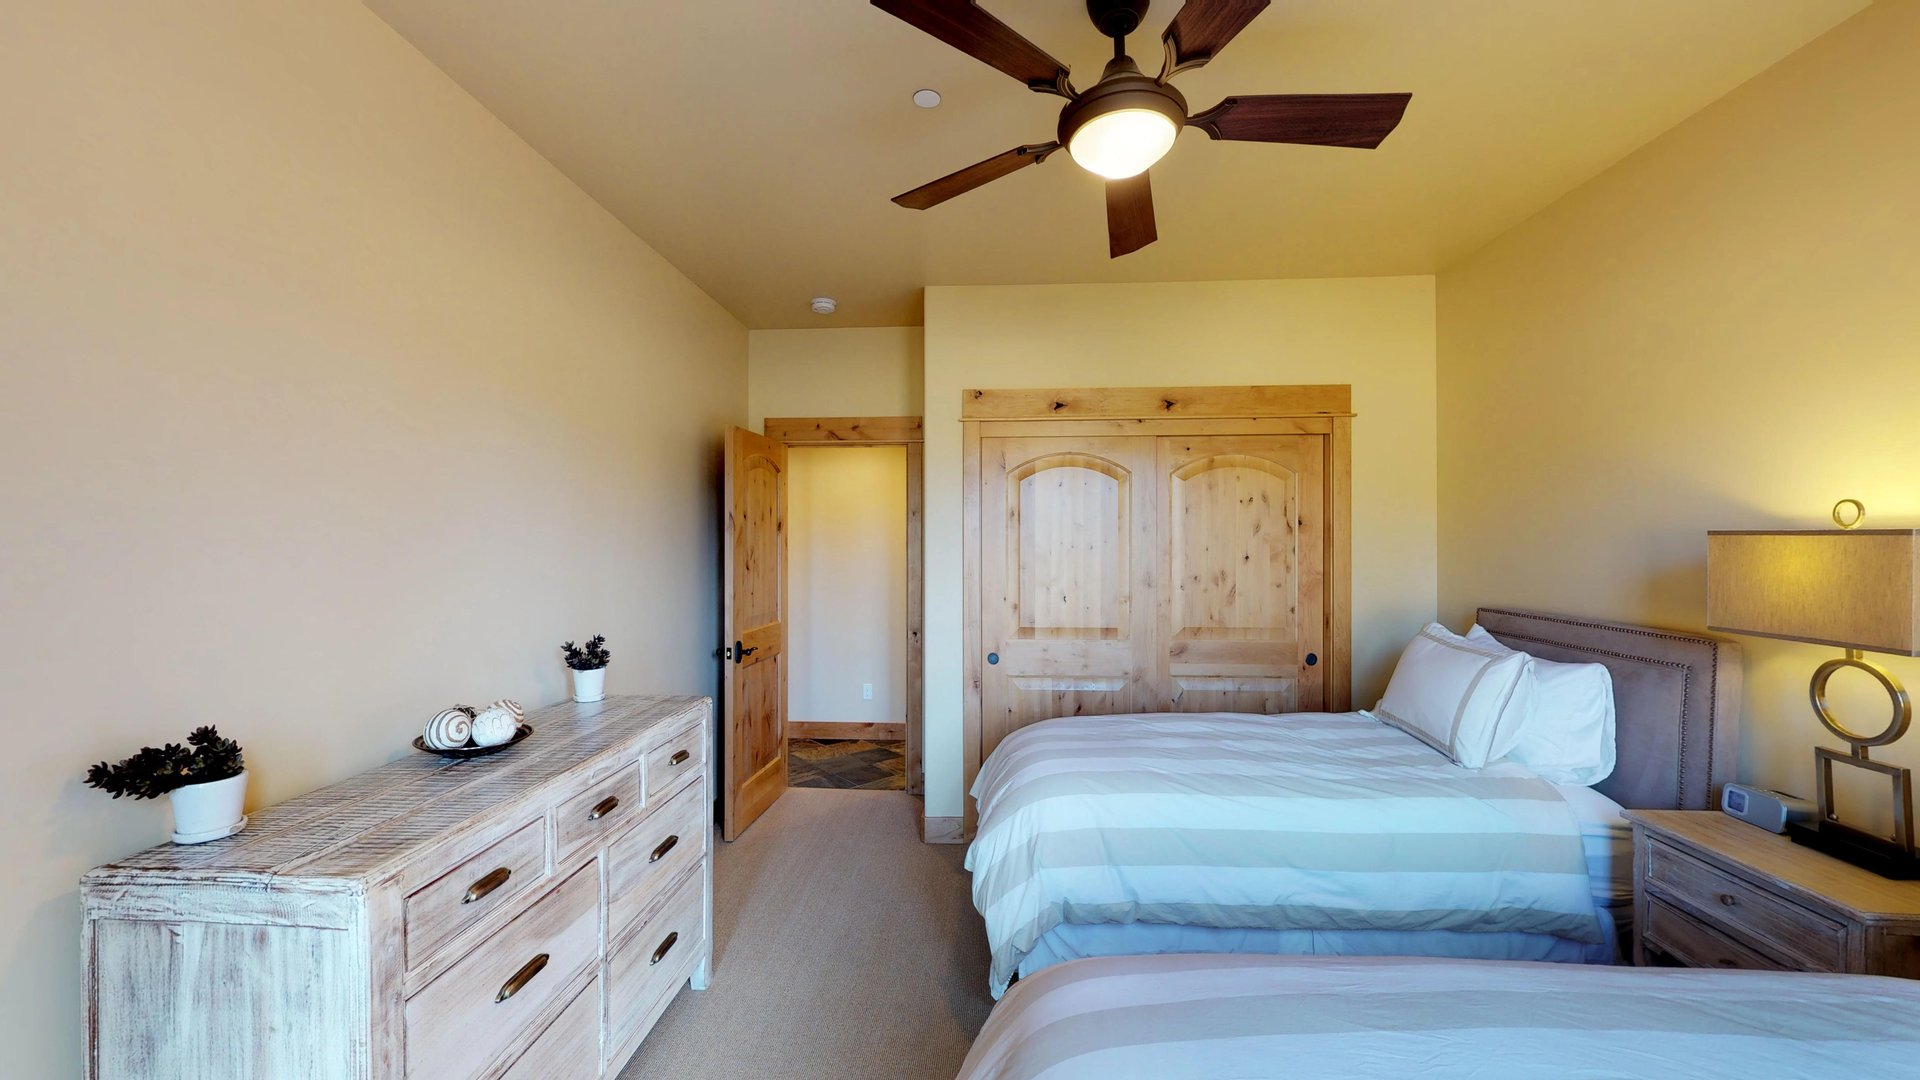 Large Bedroom with Twin Beds Features Wooden Closet.